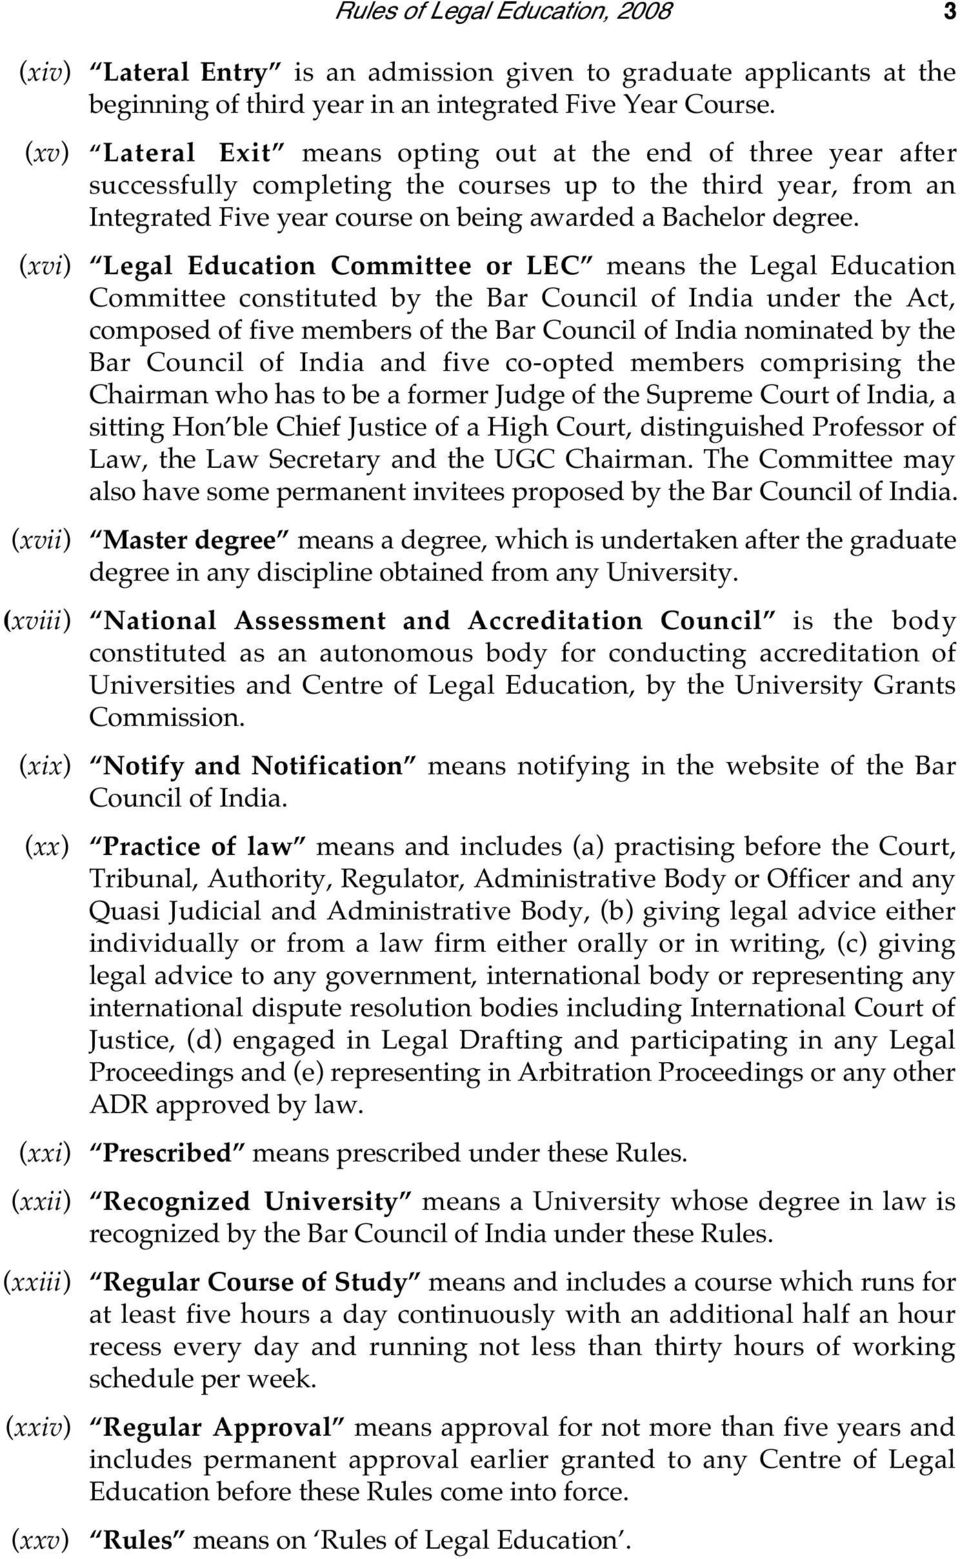 (xvi) Legal Education Committee or LEC means the Legal Education Committee constituted by the Bar Council of India under the Act, composed of five members of the Bar Council of India nominated by the